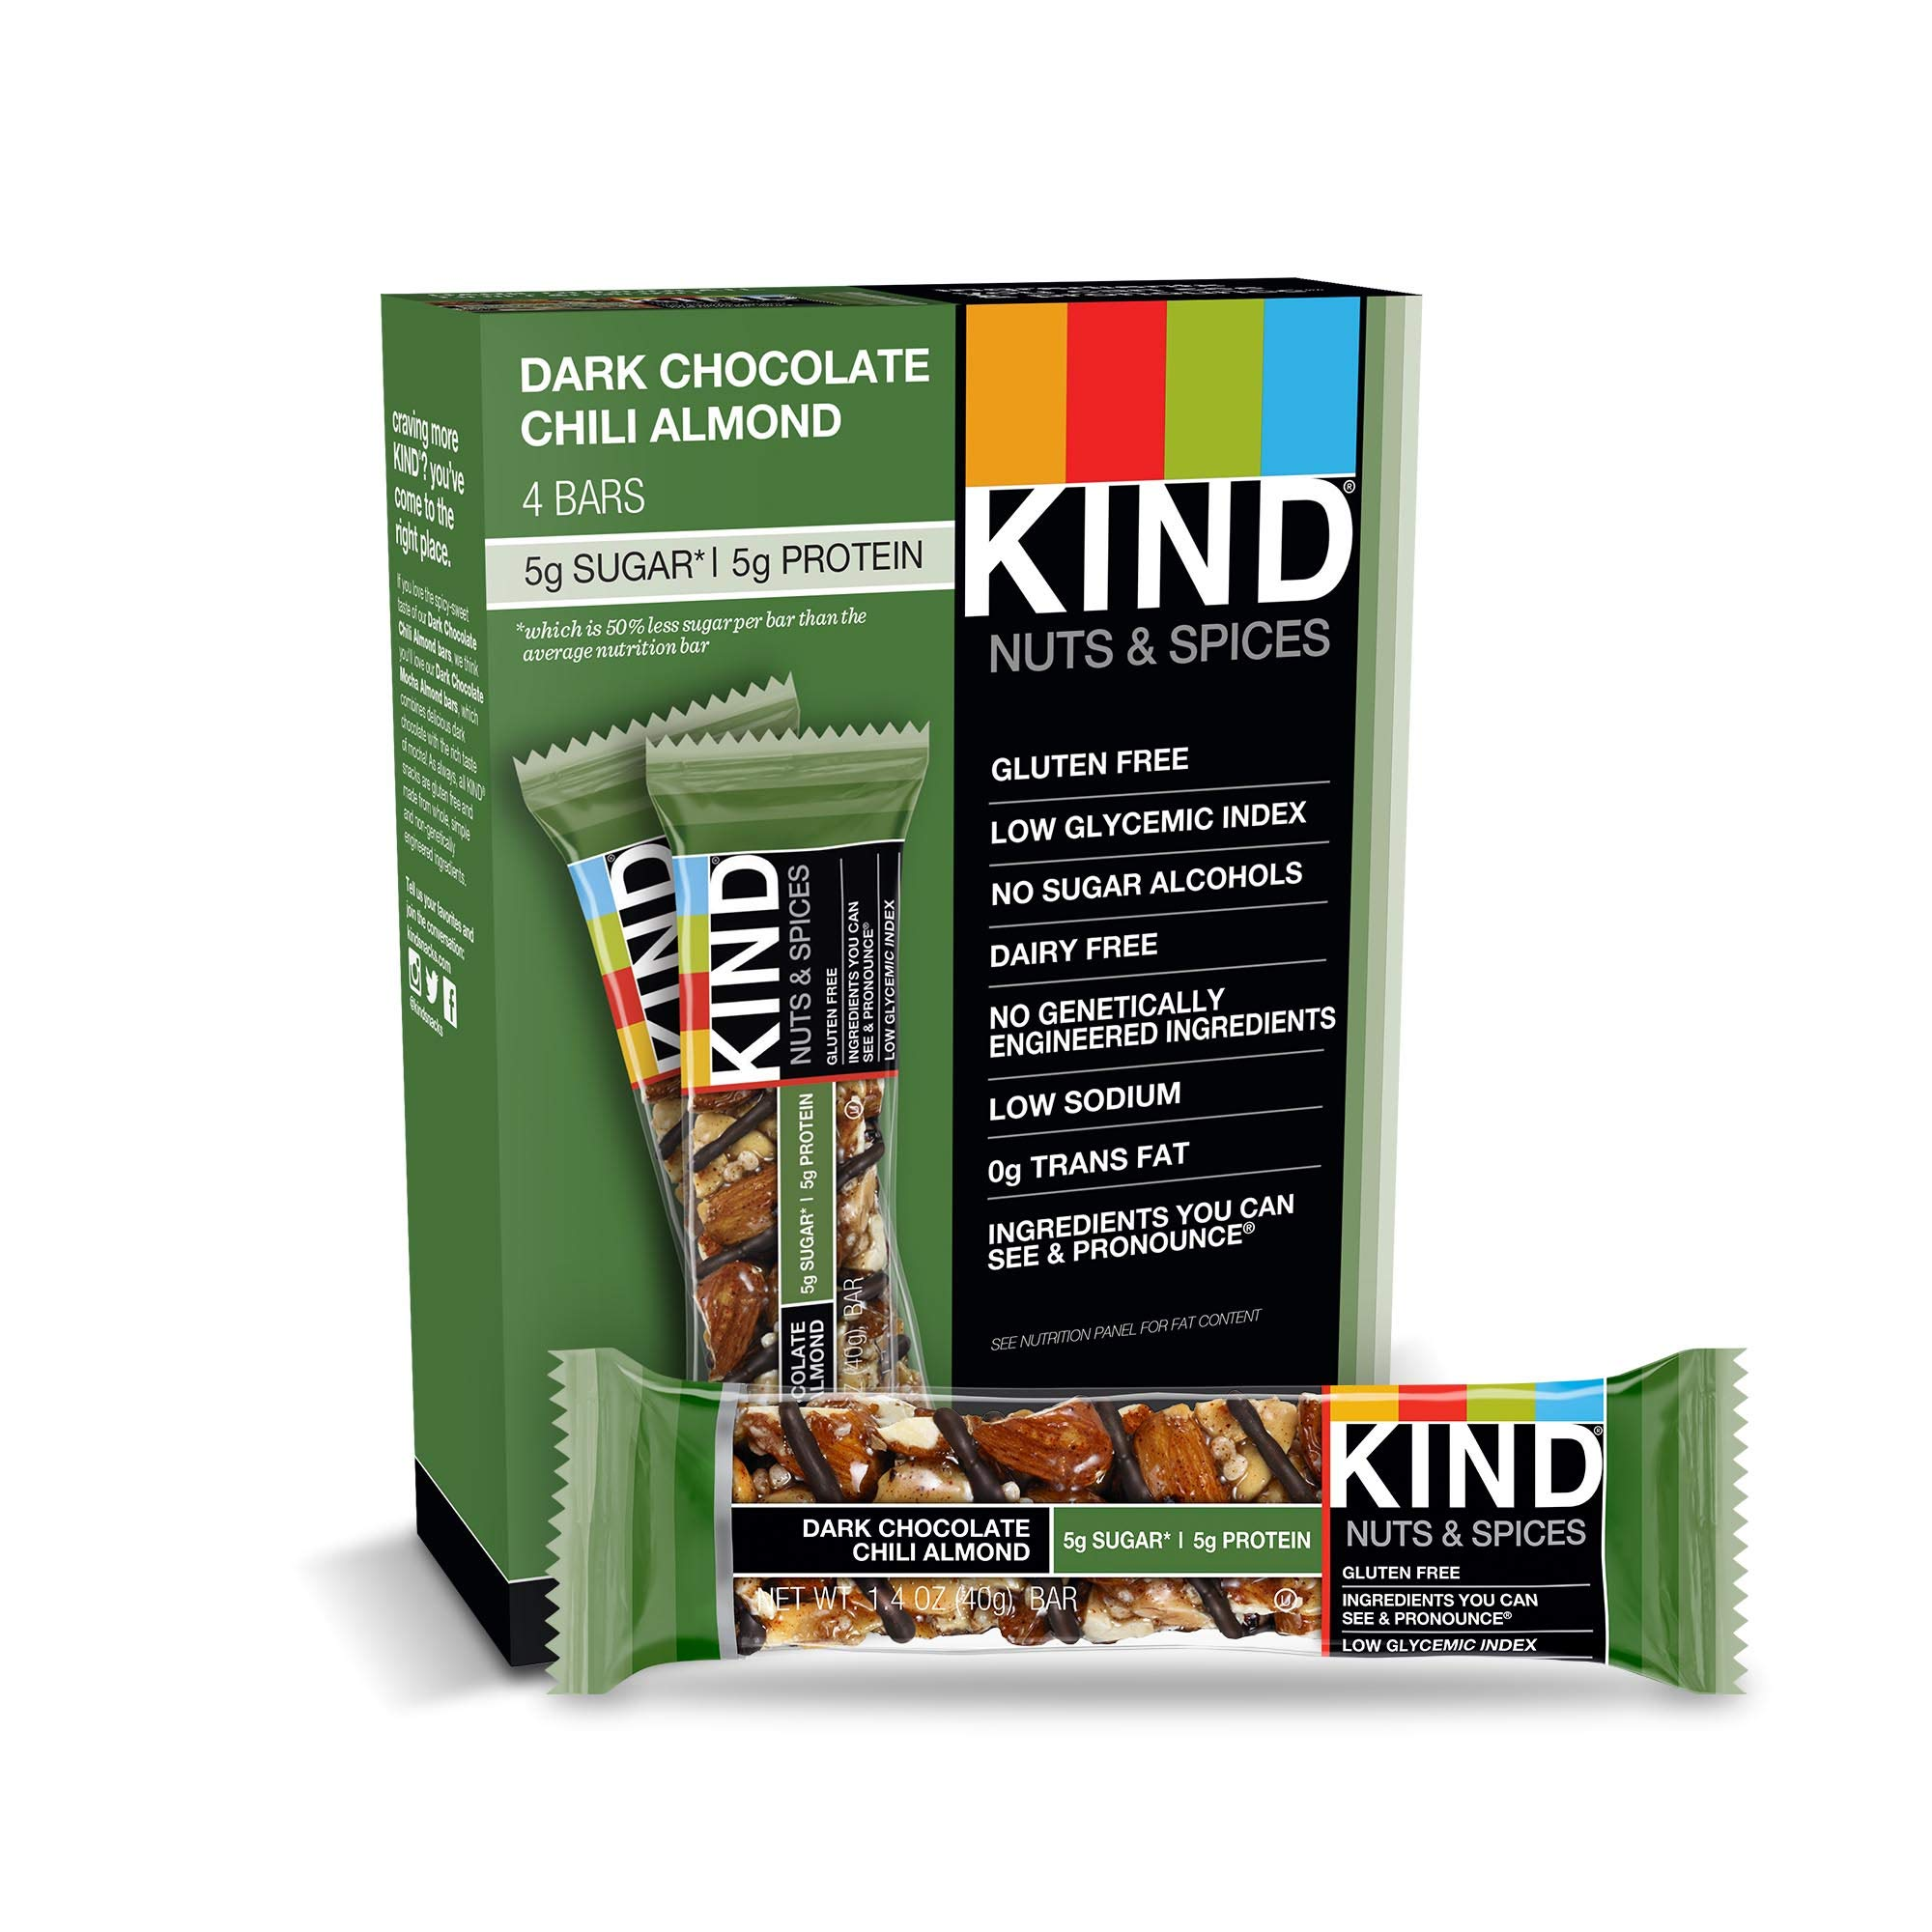 KIND Bars, Chocolate Chili Almond, Gluten Free, Low Sugar, 1.4oz, 4 Count (Pack of 12) by KIND